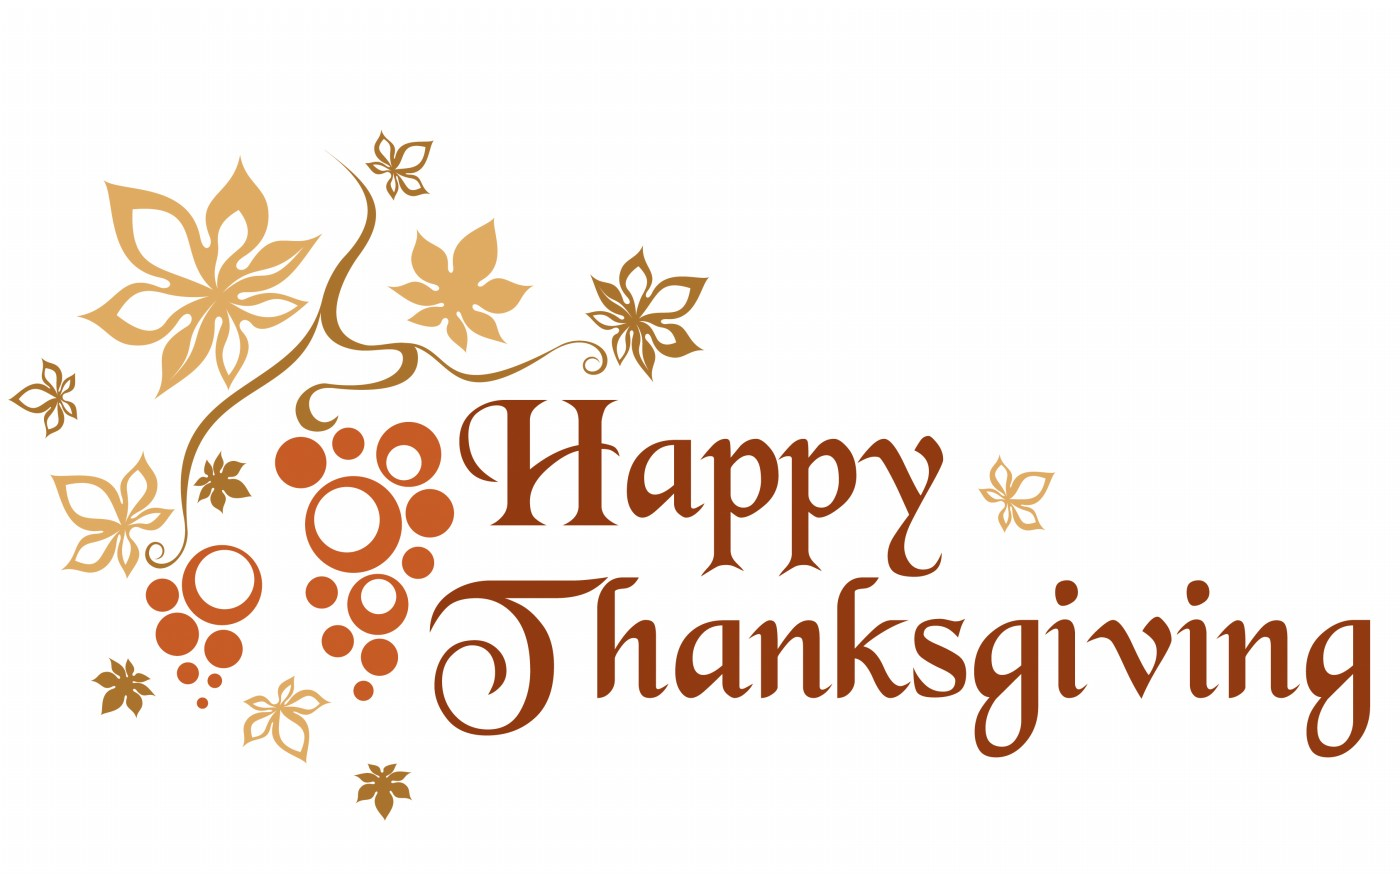 Superior woodcraft happy thanksgiving from our family to yours happy thanksgiving images m4hsunfo